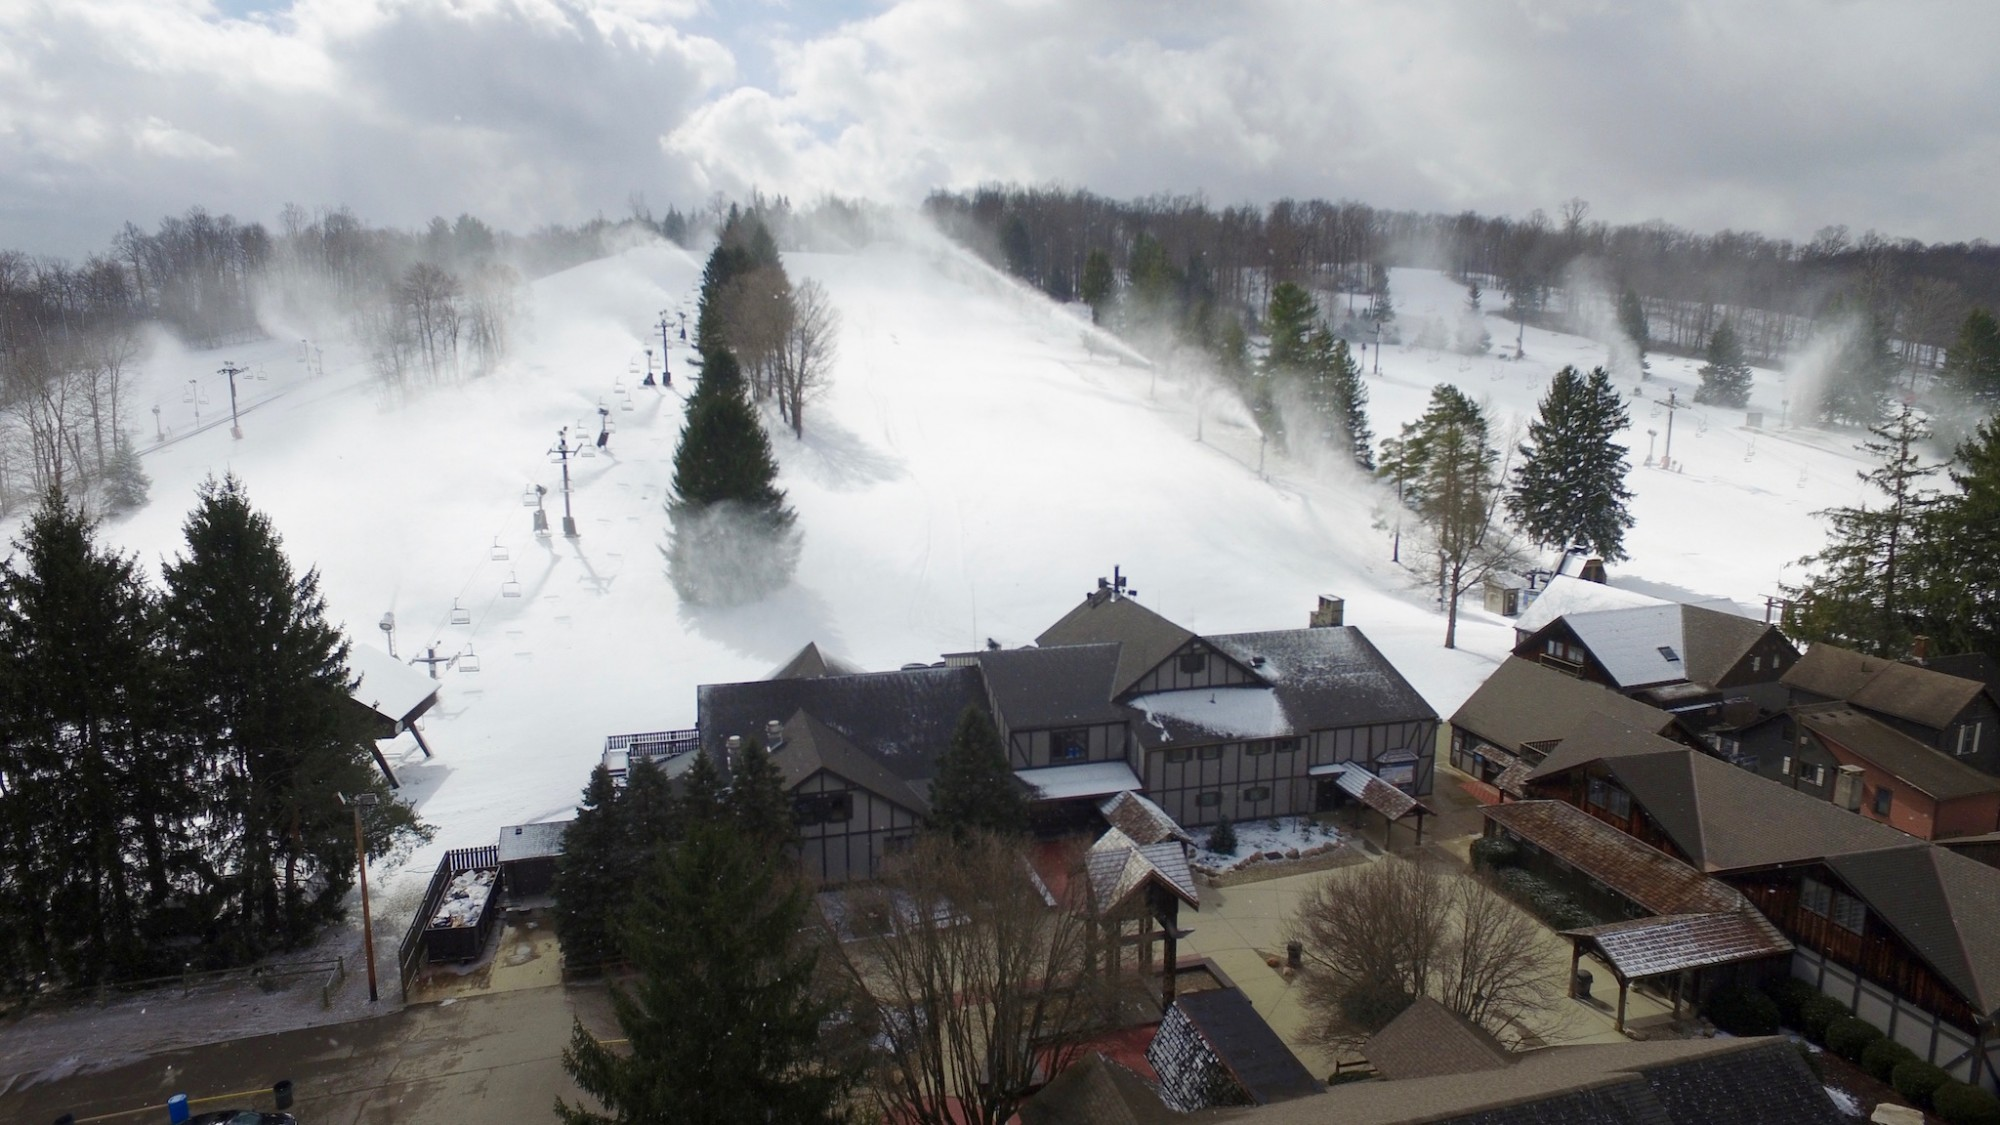 Snowmaking at Snow Trails in Mansfield, Ohio